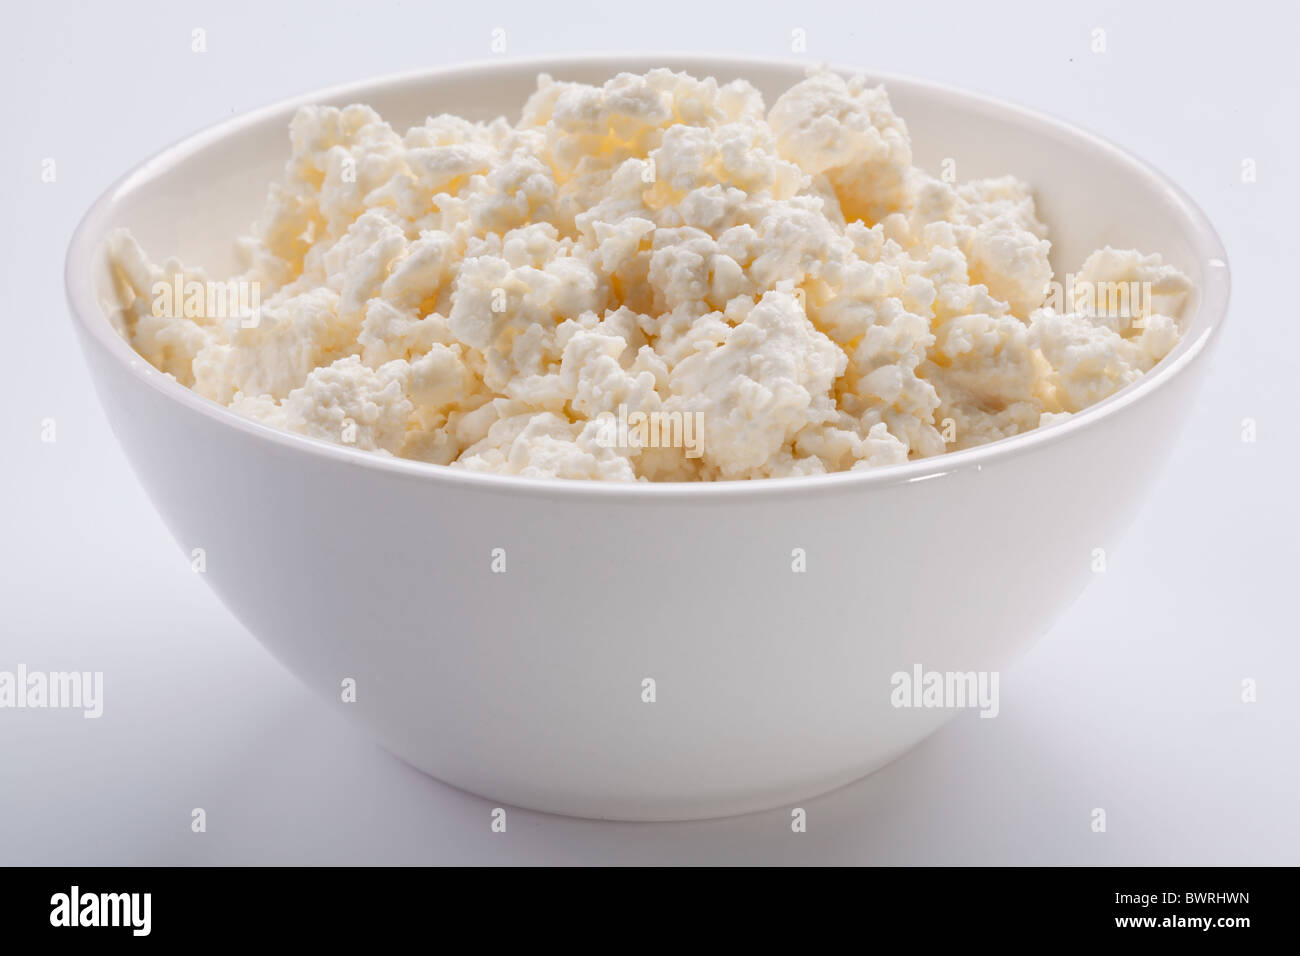 Bowl with fresh cottage cheese. Isolated on a white. - Stock Image